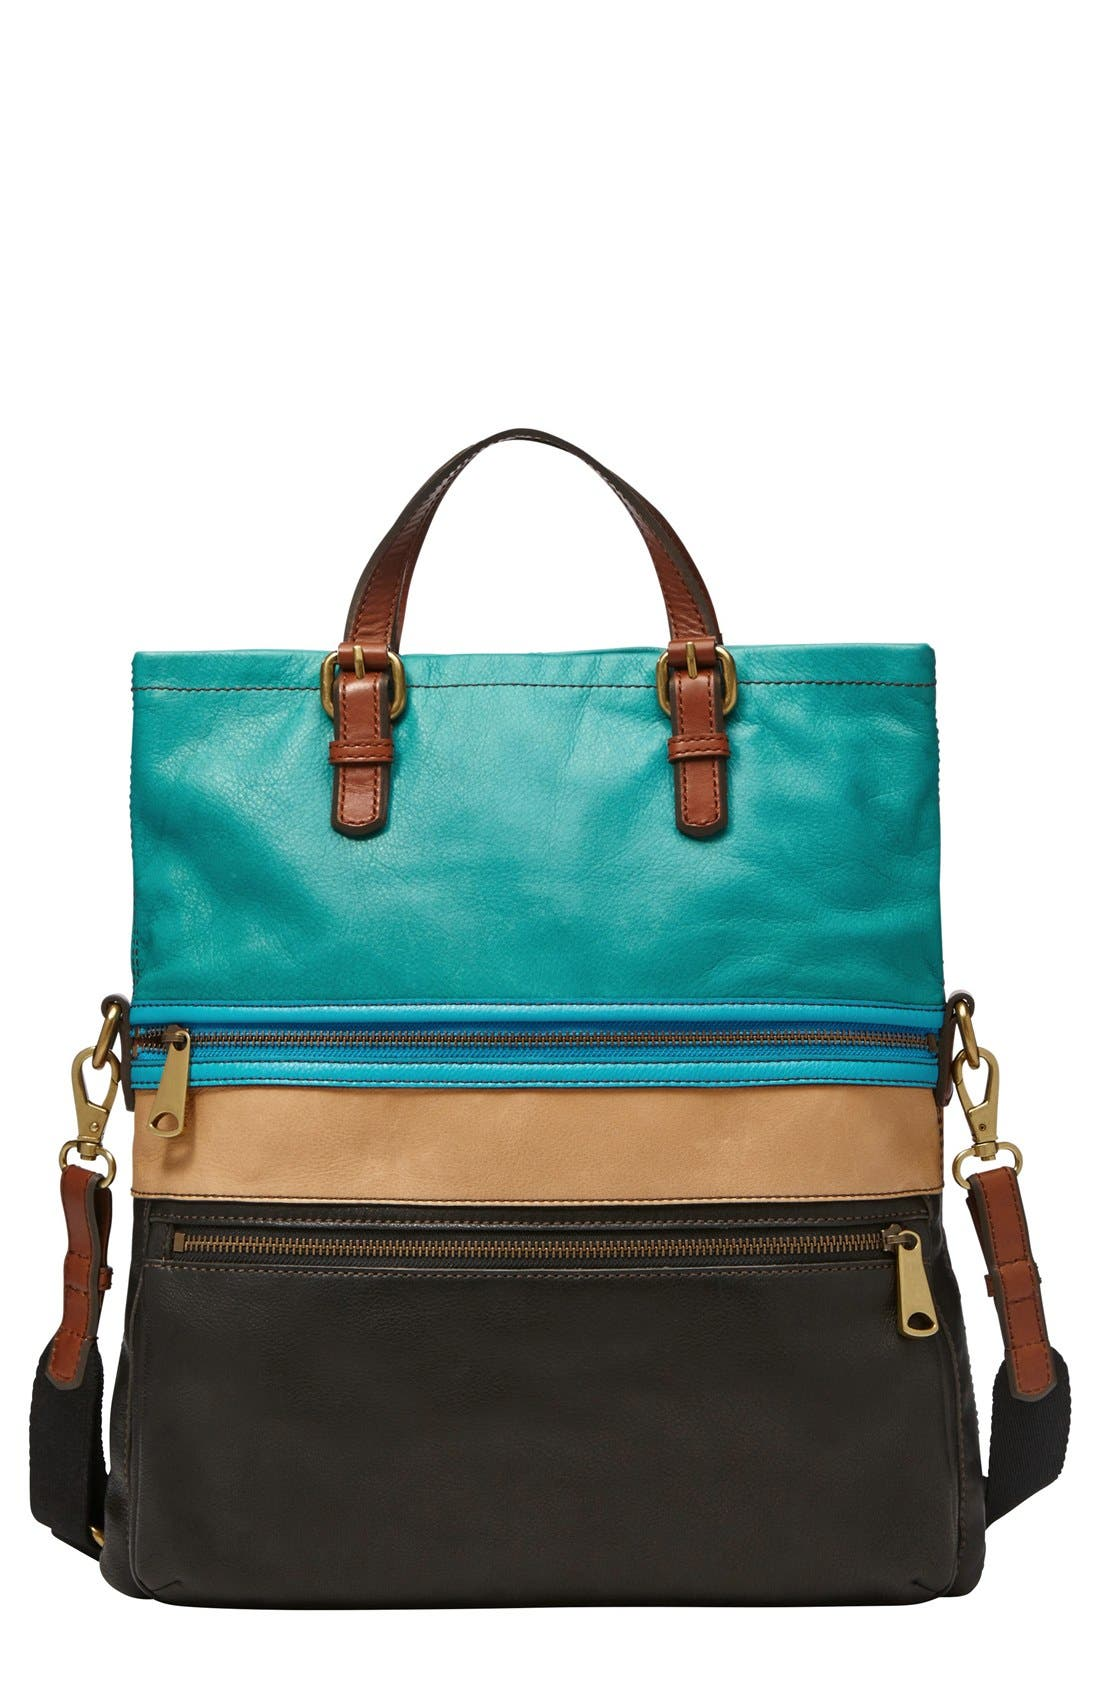 Alternate Image 1 Selected - Fossil 'Explorer' Patchwork Convertible Tote